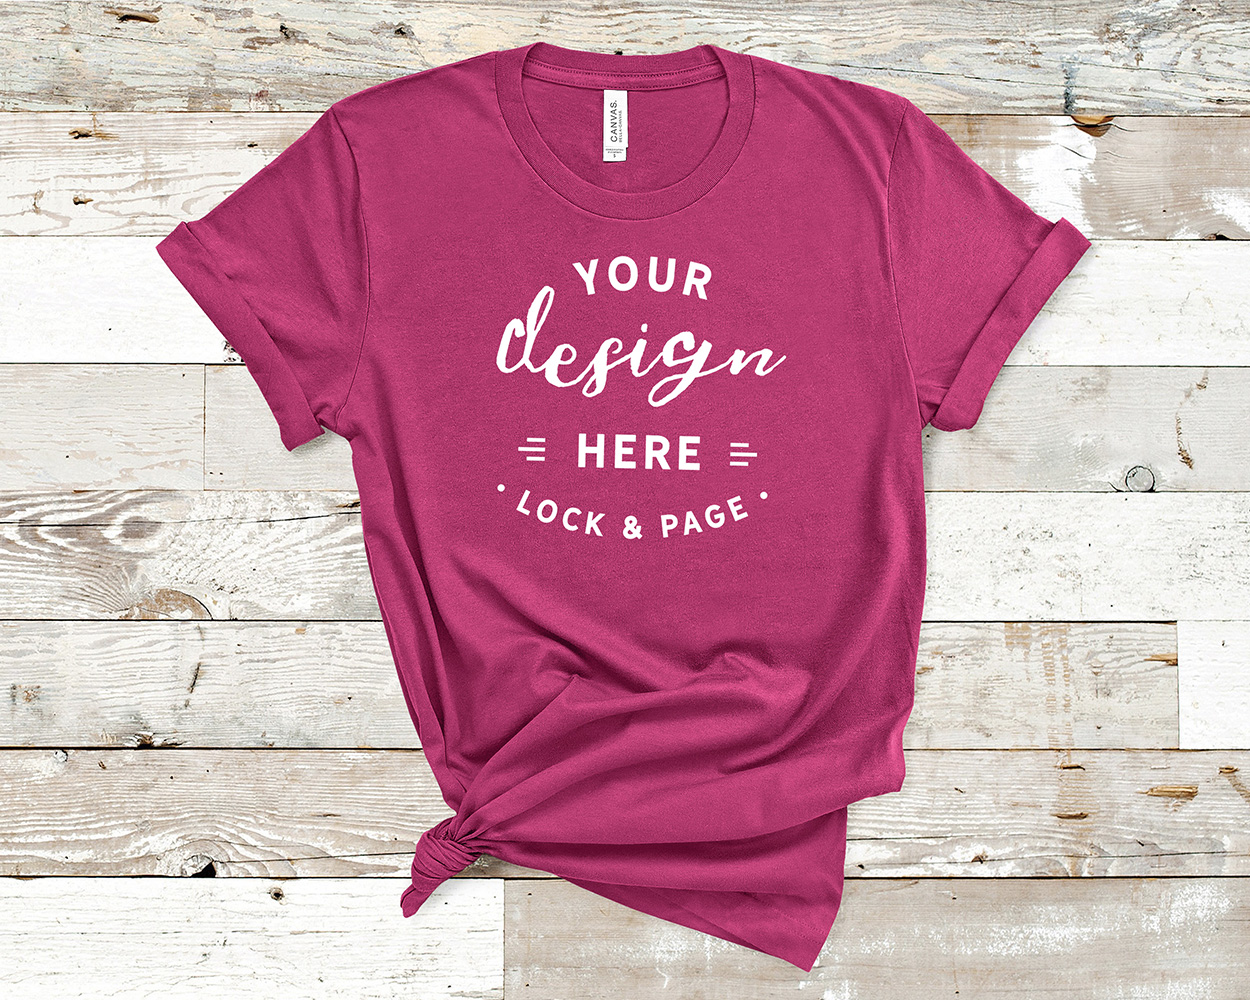 Bella Canvas 3001 Mockup T-Shirt Bundle All Colors On Wood example image 5